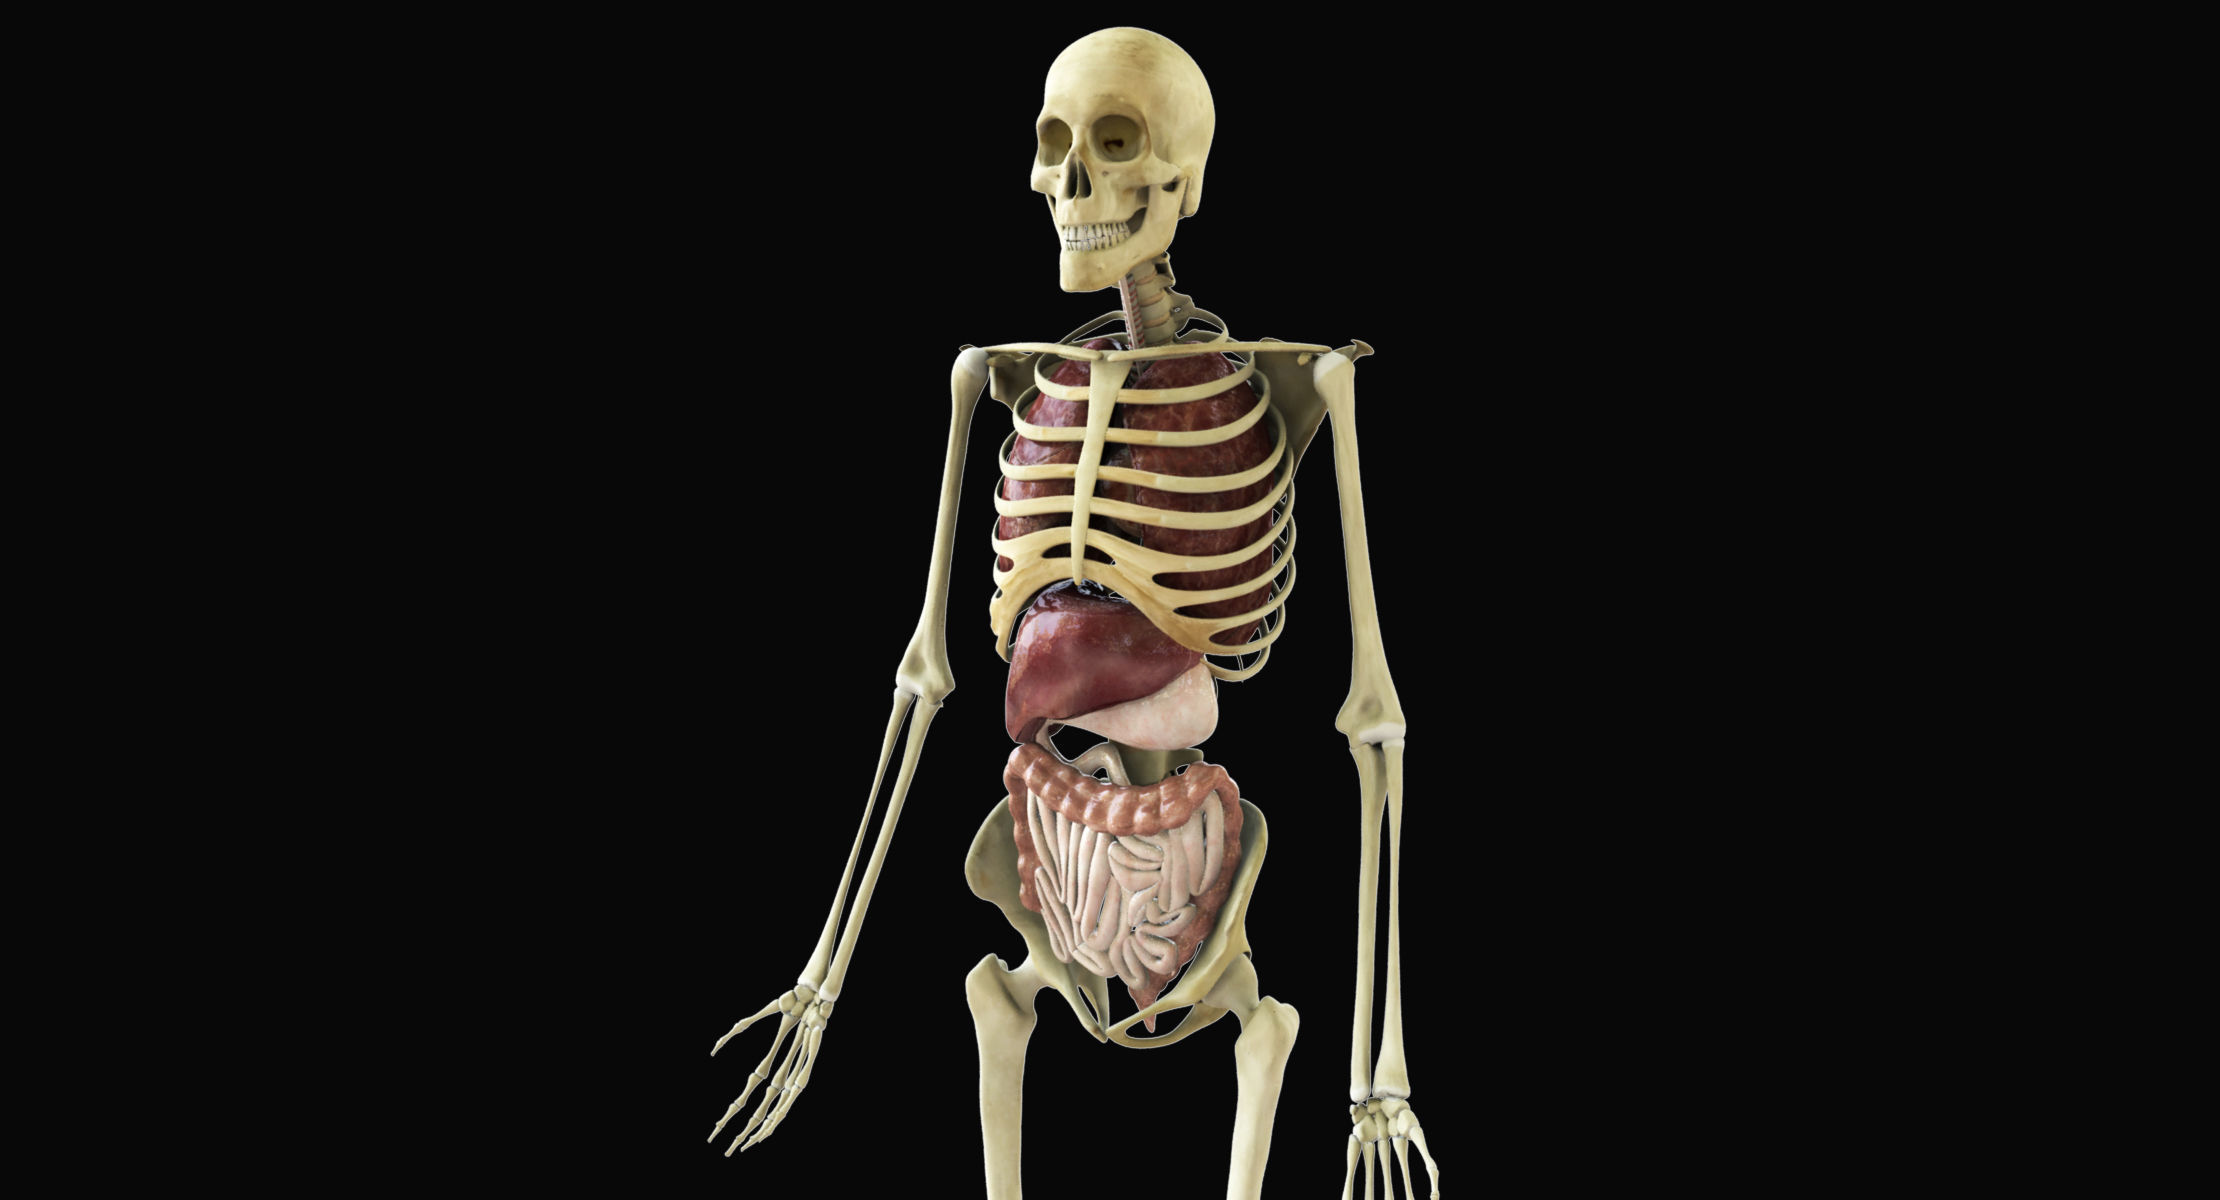 Human Skeleton With Digestive and Respiratory Systems